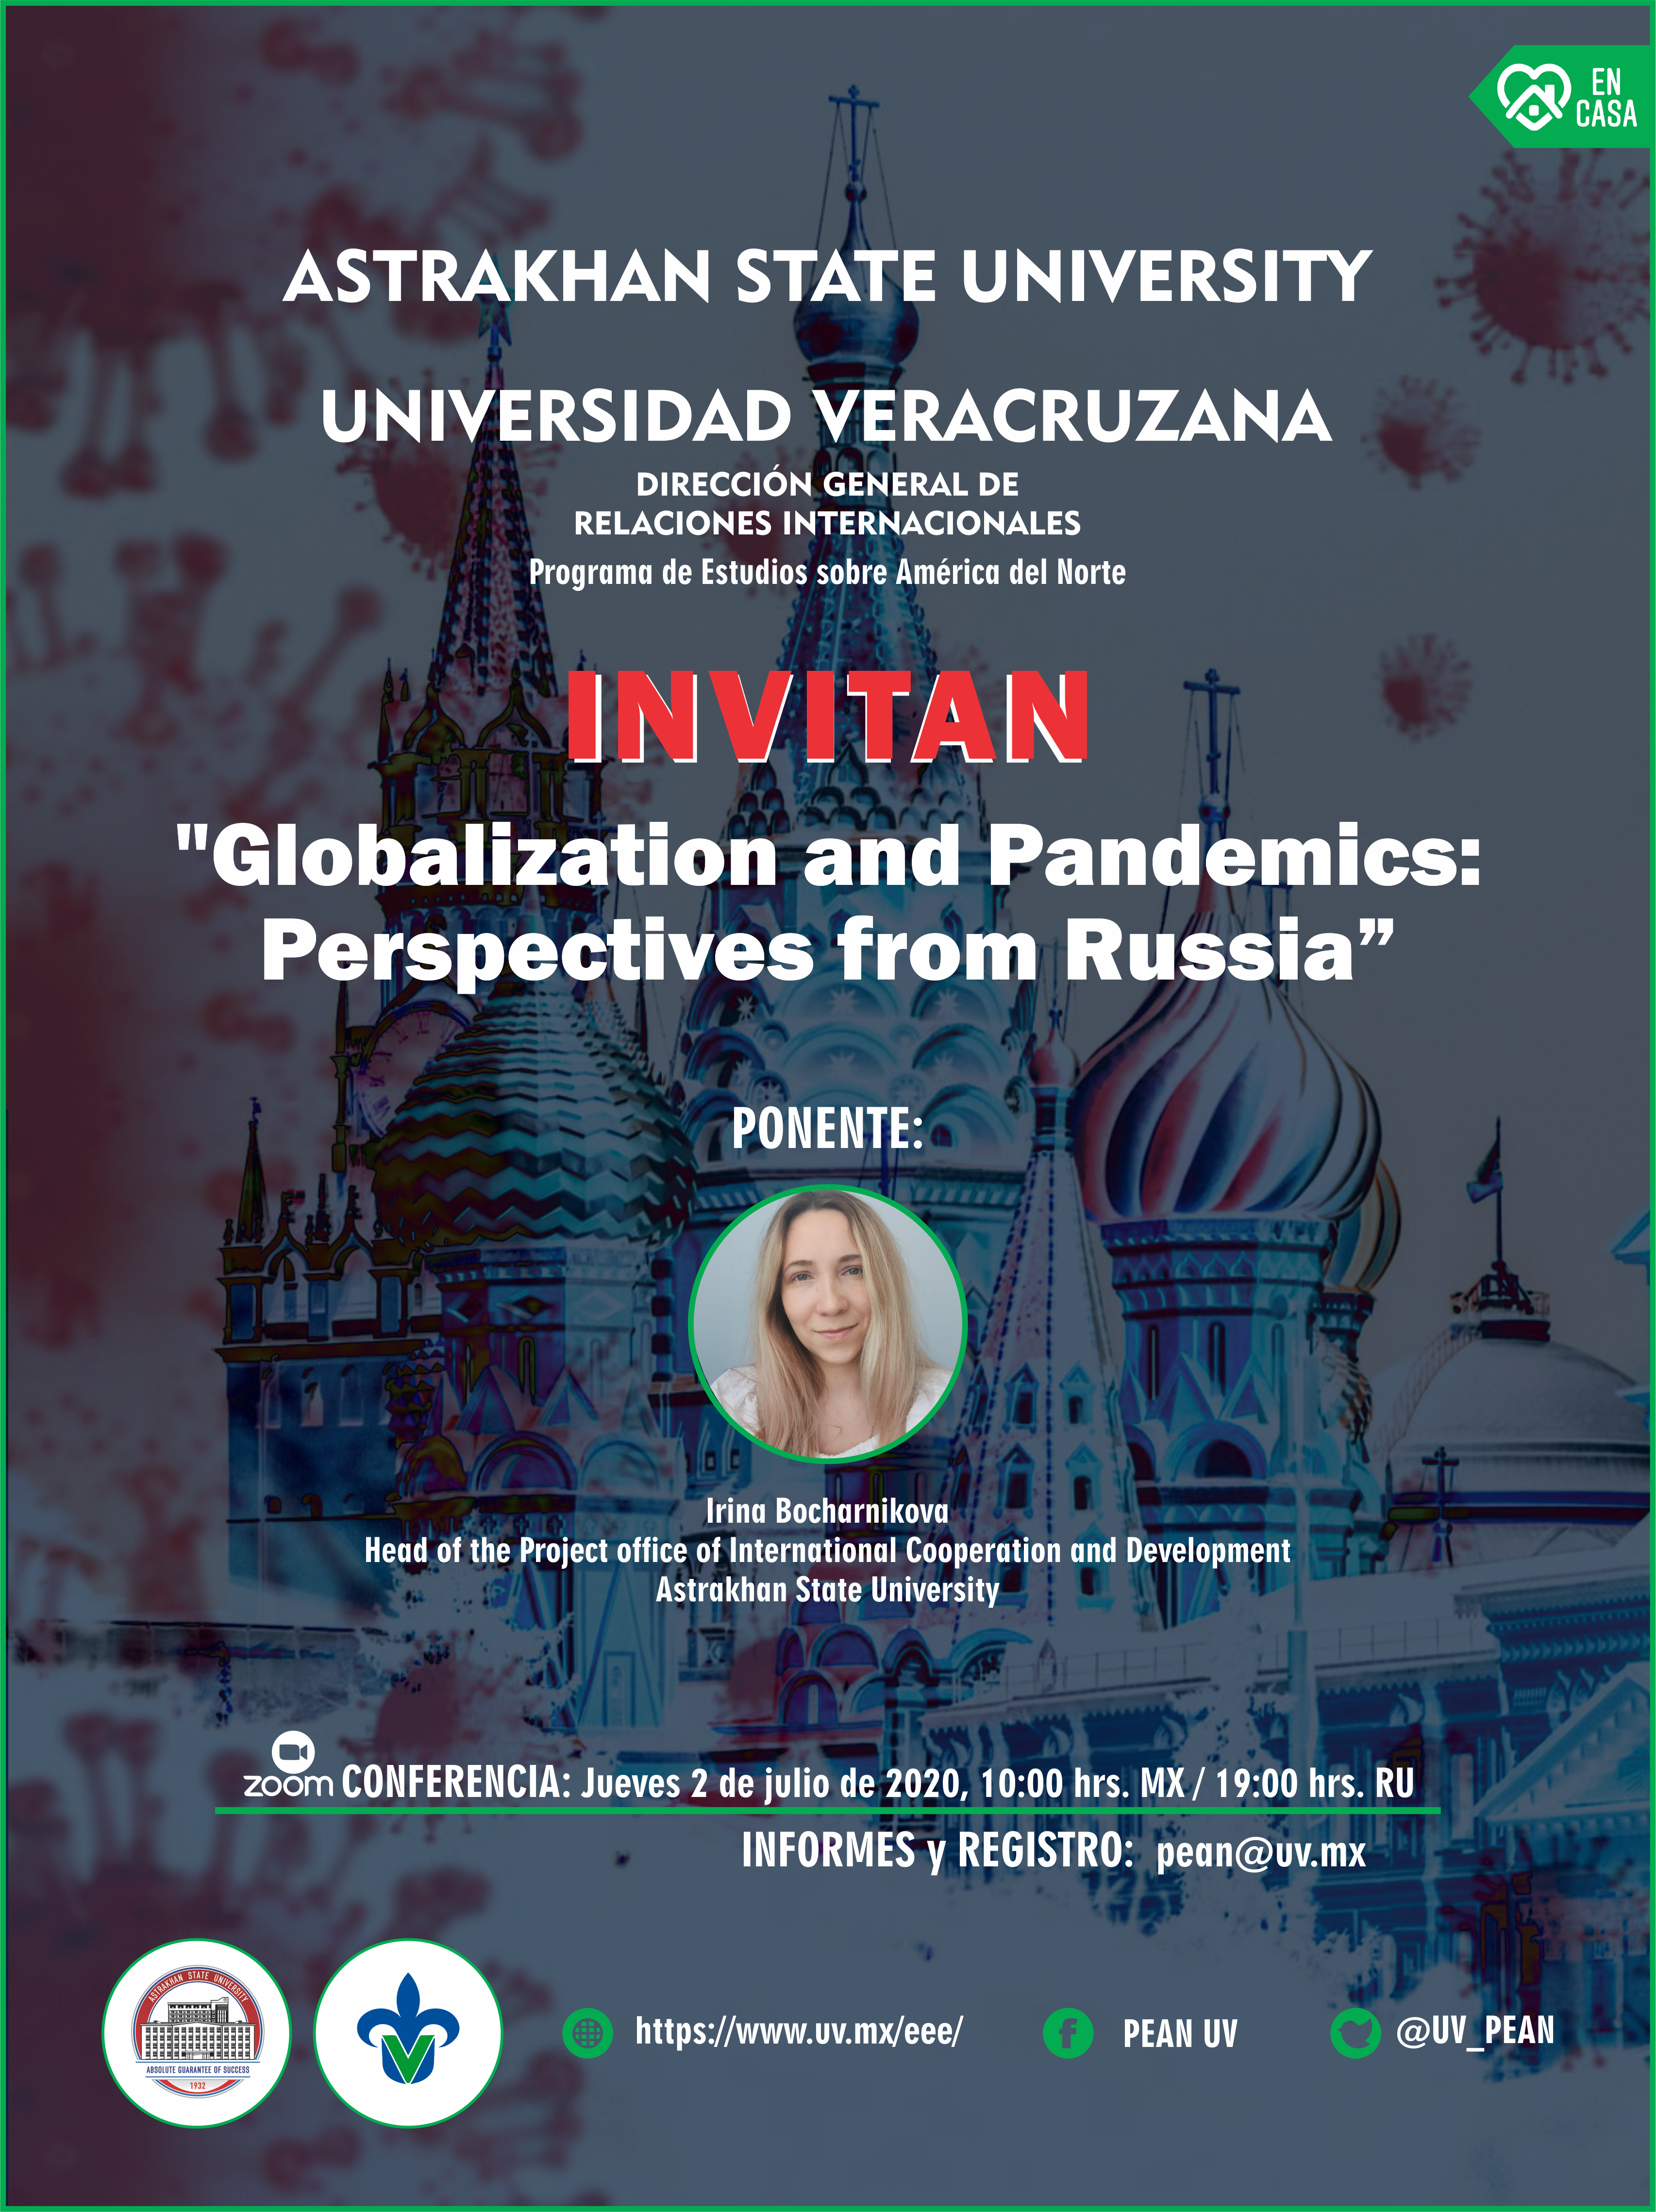 PEAN:Globalization and Pandemics: Perspectives from Russia